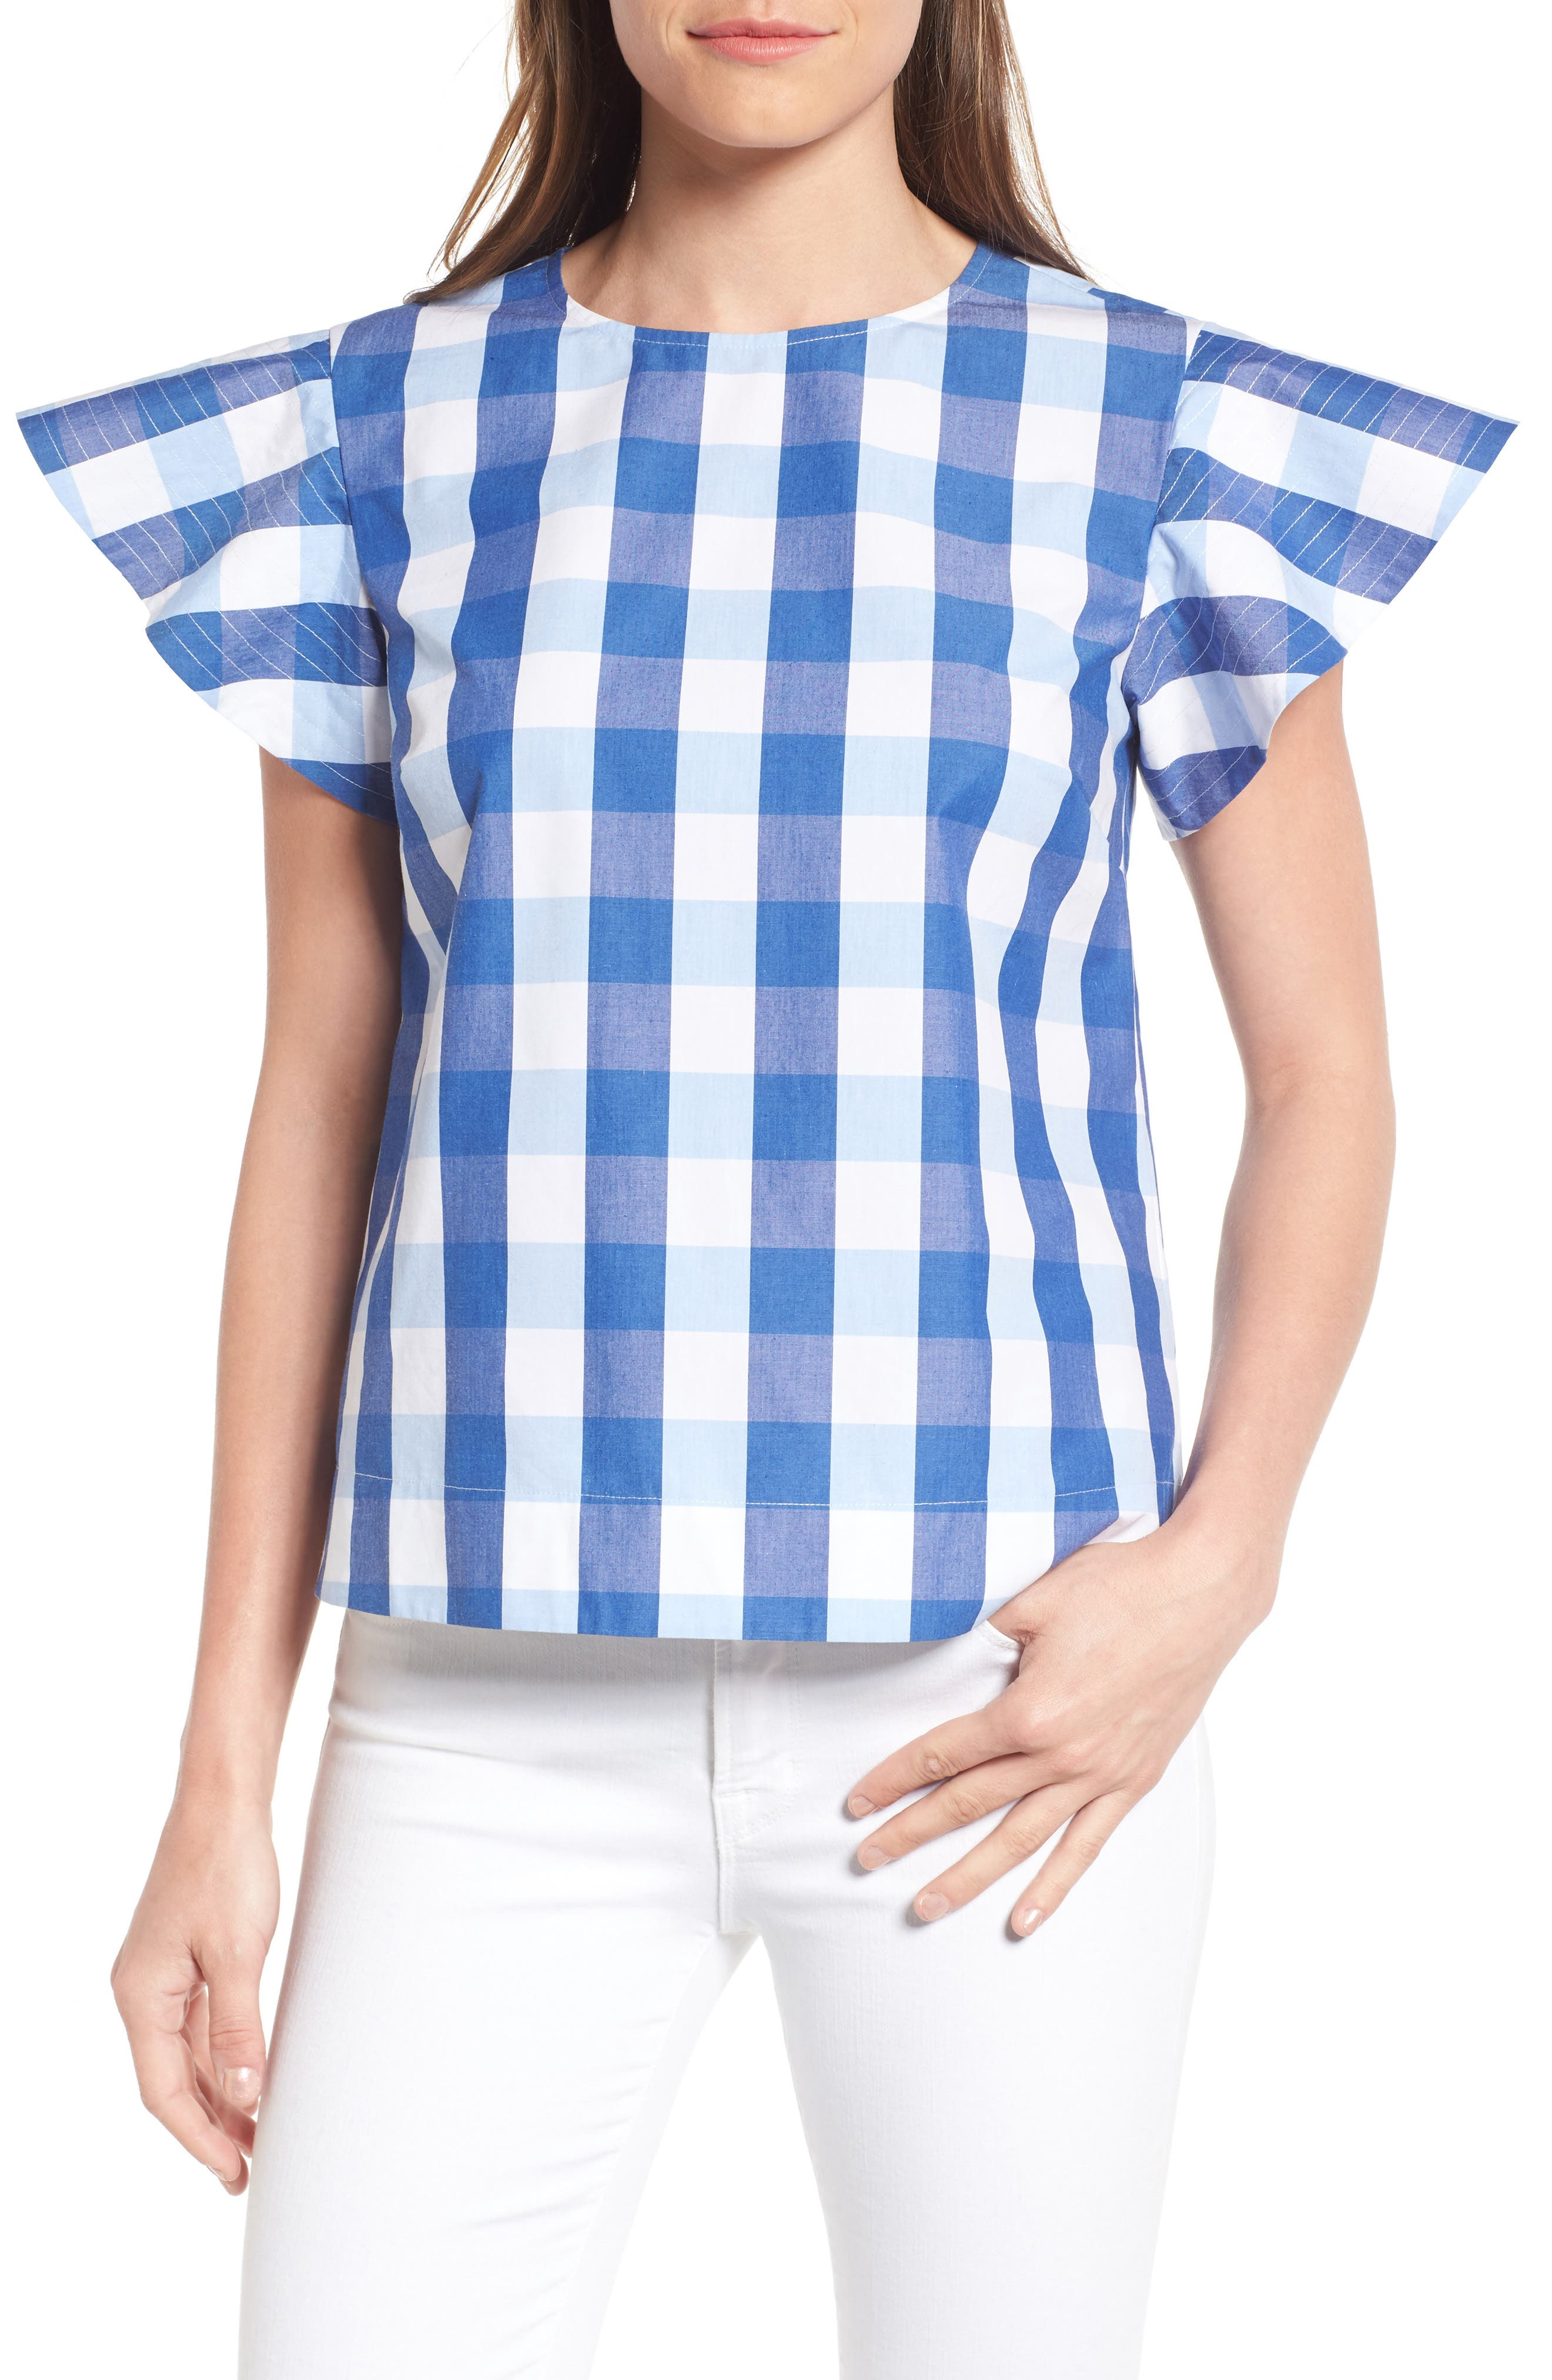 Cloister Gingham Cotton Top,                             Main thumbnail 1, color,